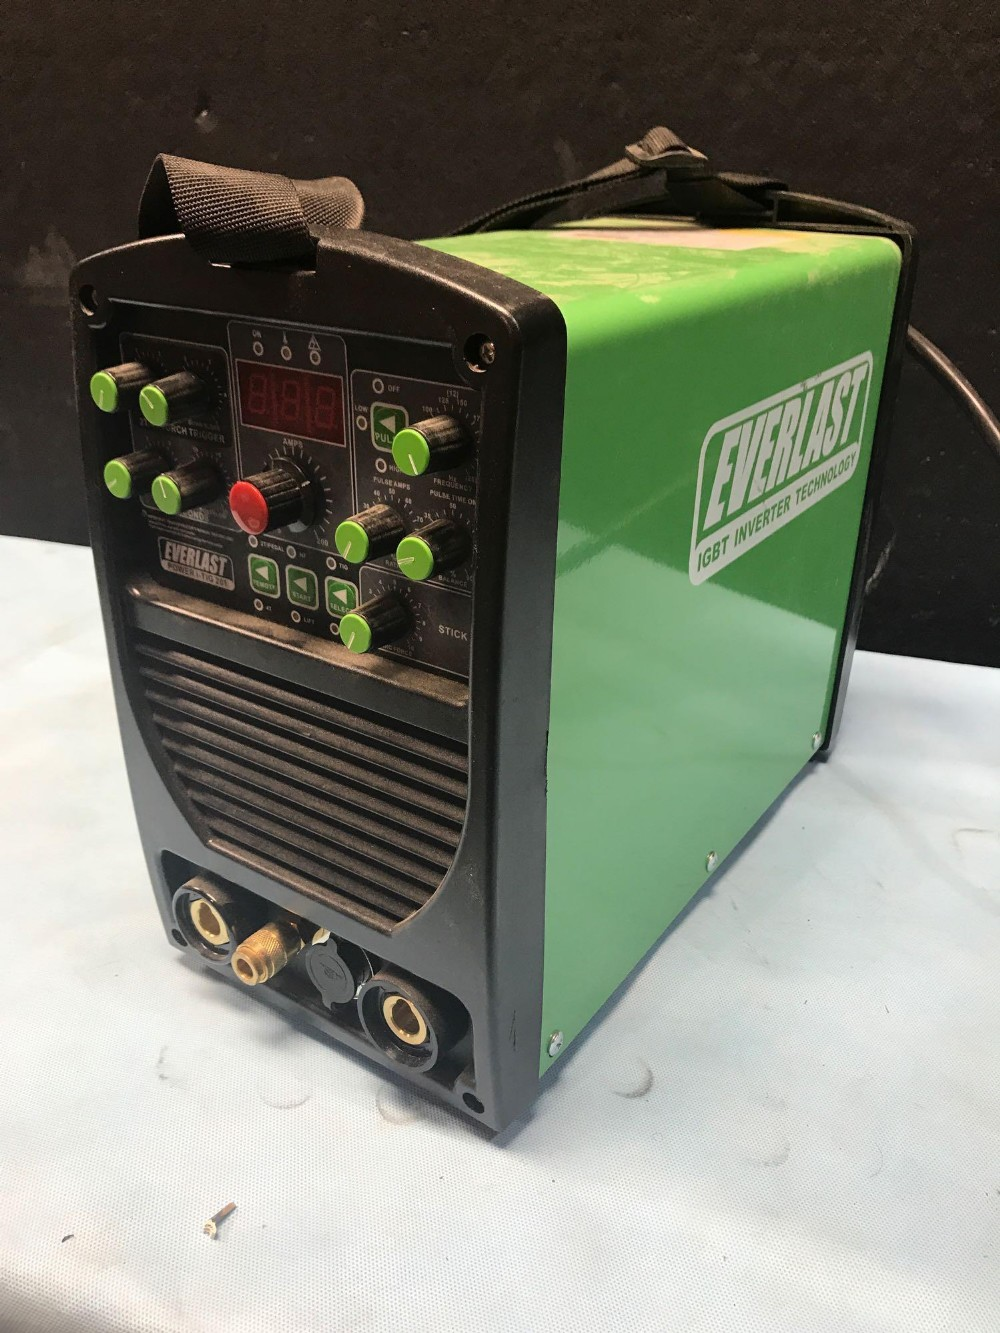 Lot 9 - EVERLAST IGBT INVERTER TECHNOLOGY - POWER I-TIG 201 WELDER